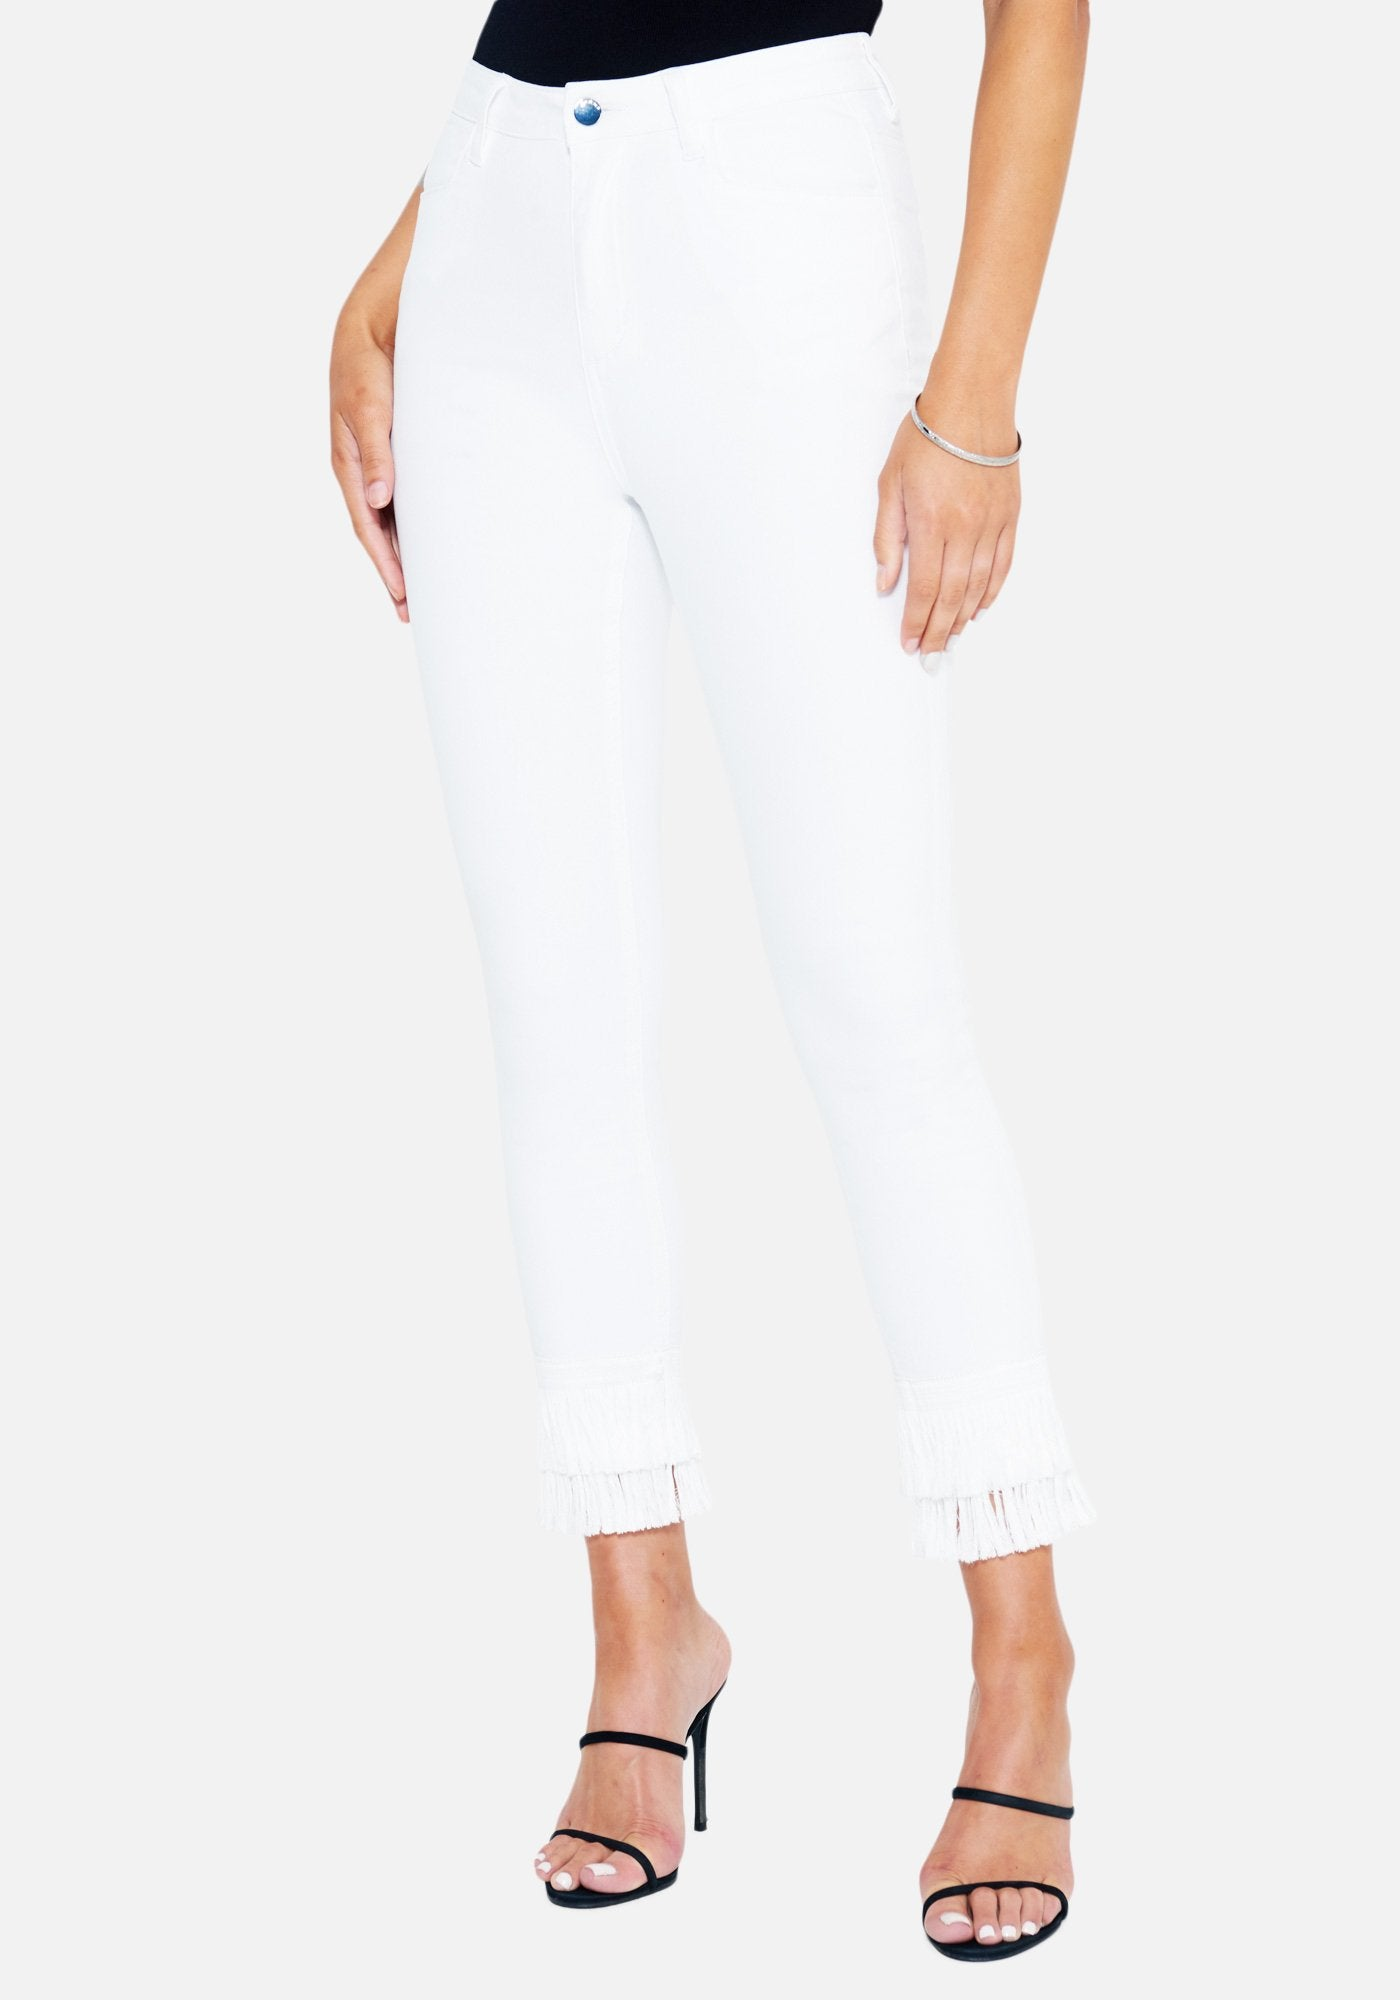 Bebe Women's Fringe Detail Skinny Jeans, Size 25 in White Cotton/Spandex